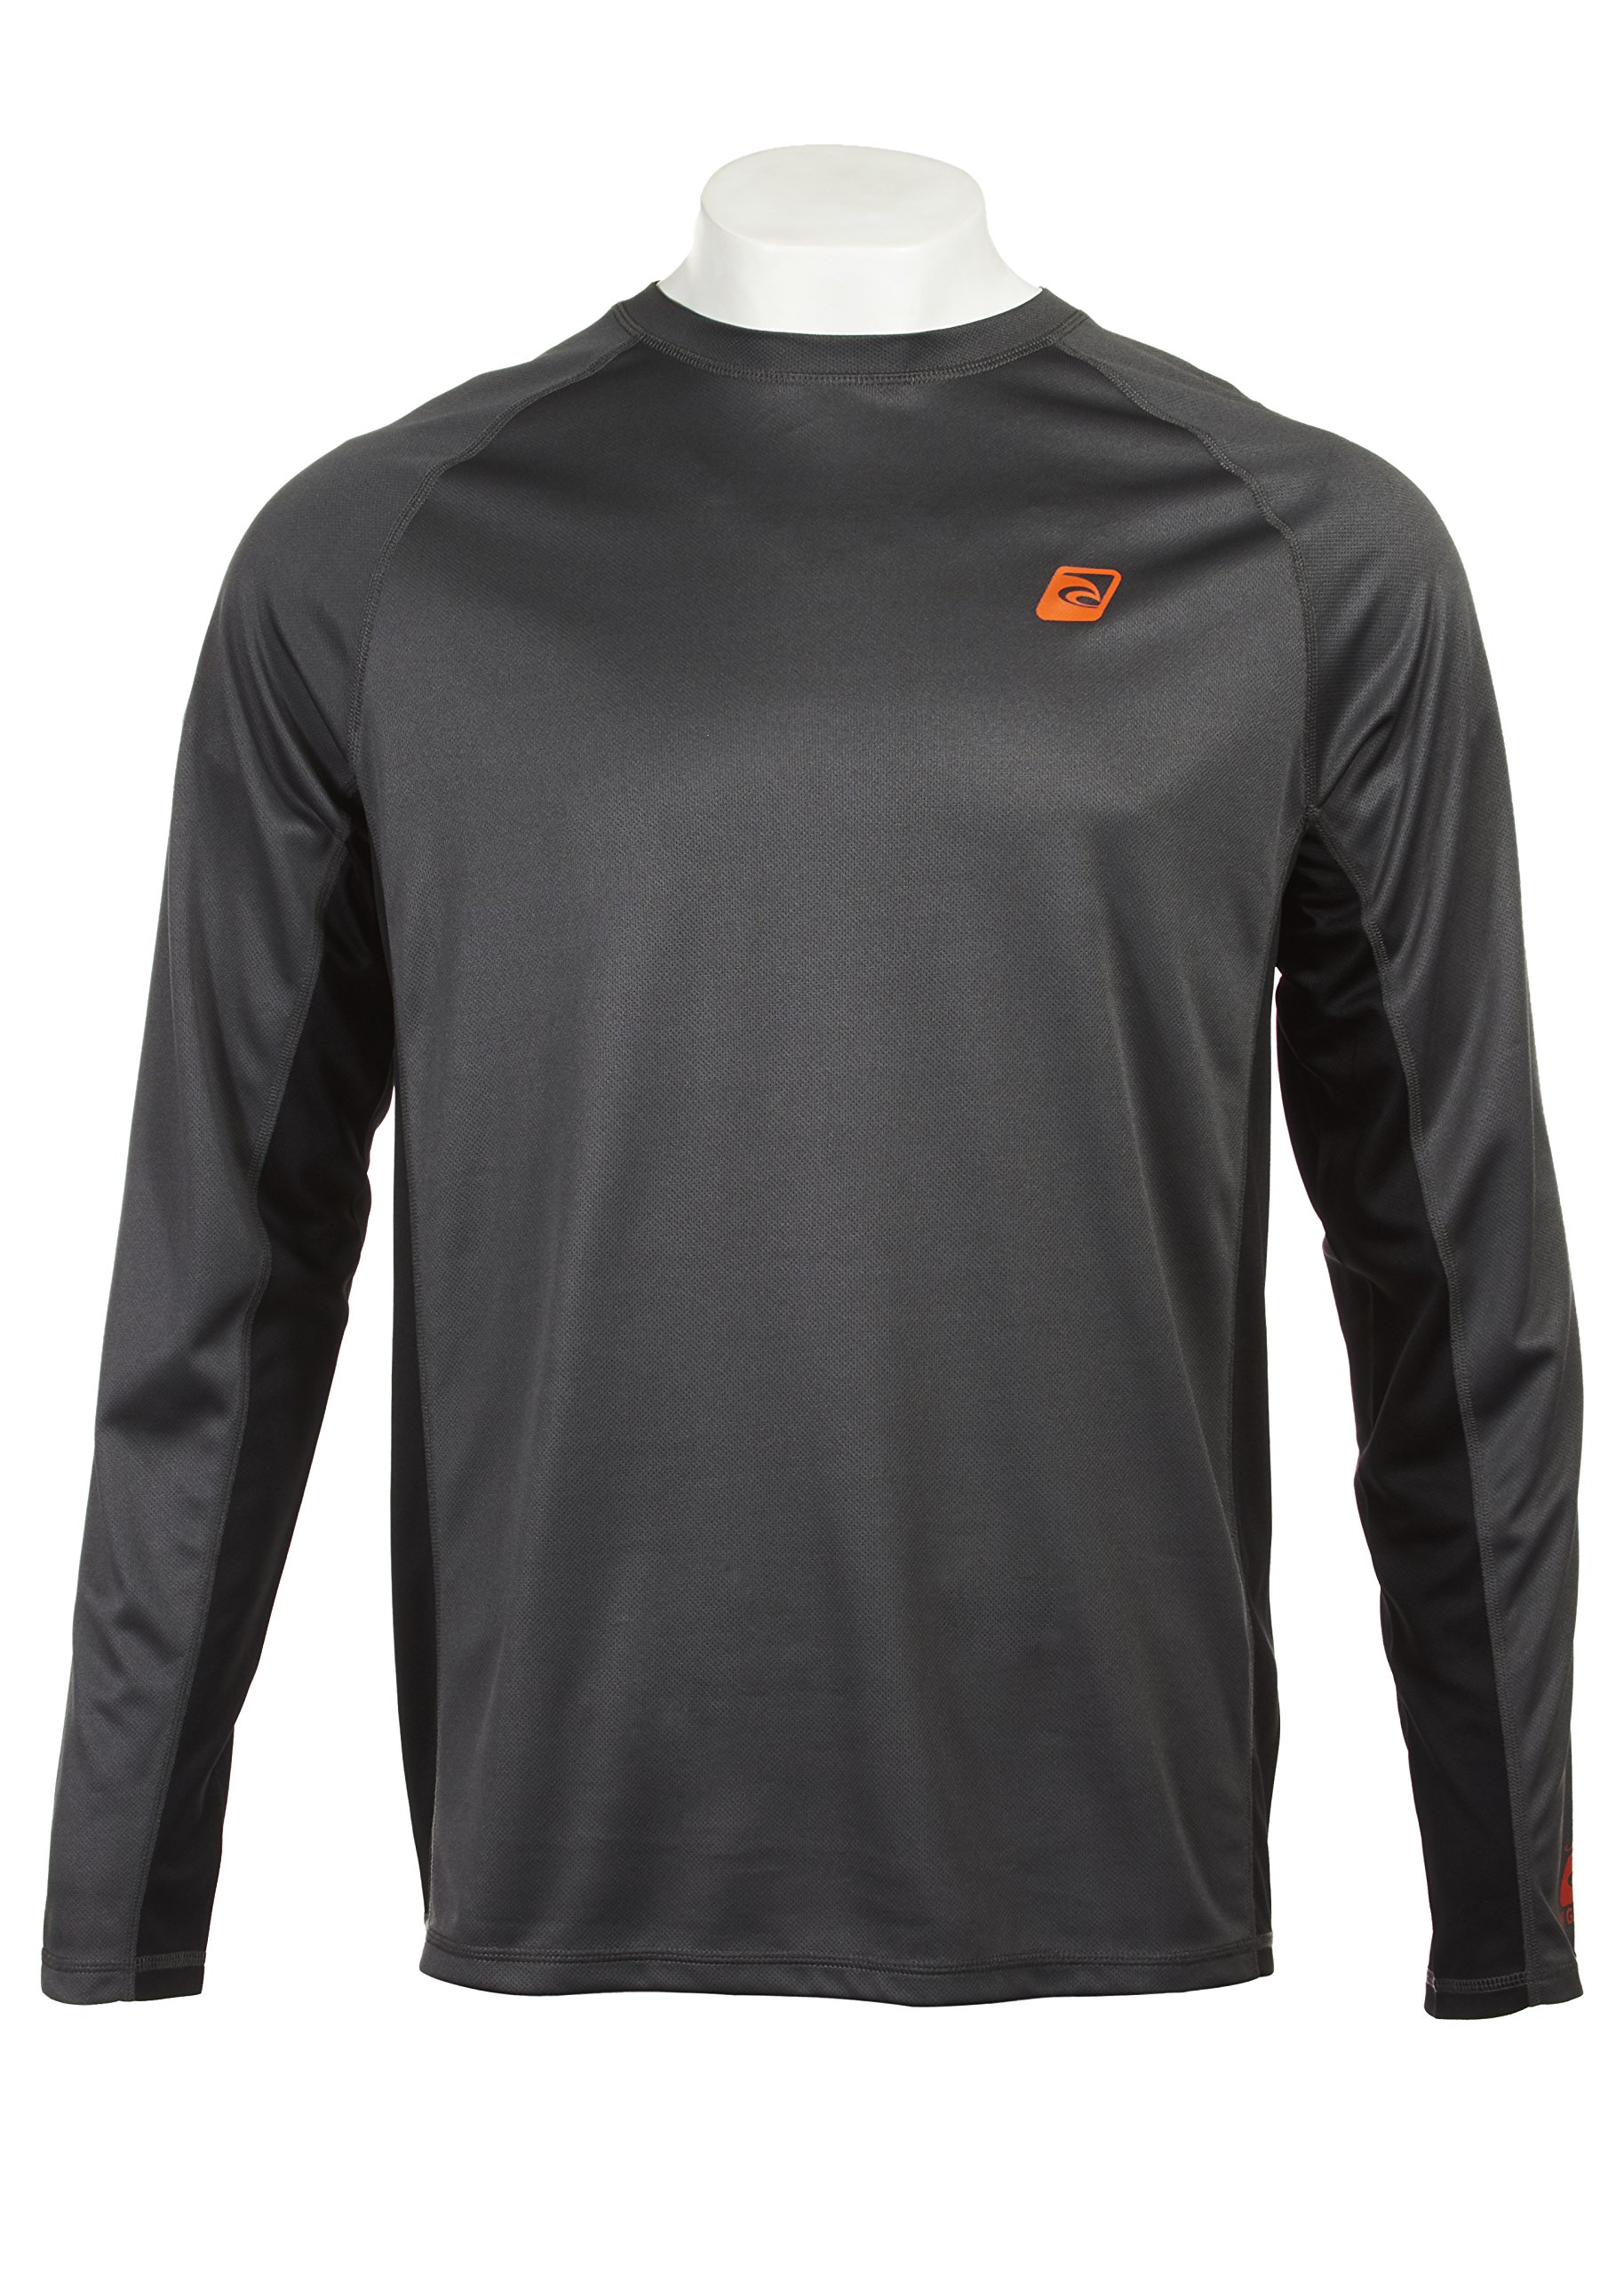 Laguna Men's UPF 50+ Lifeguard Loose-Fit Rashguard, Charcoal/Black, 2XL